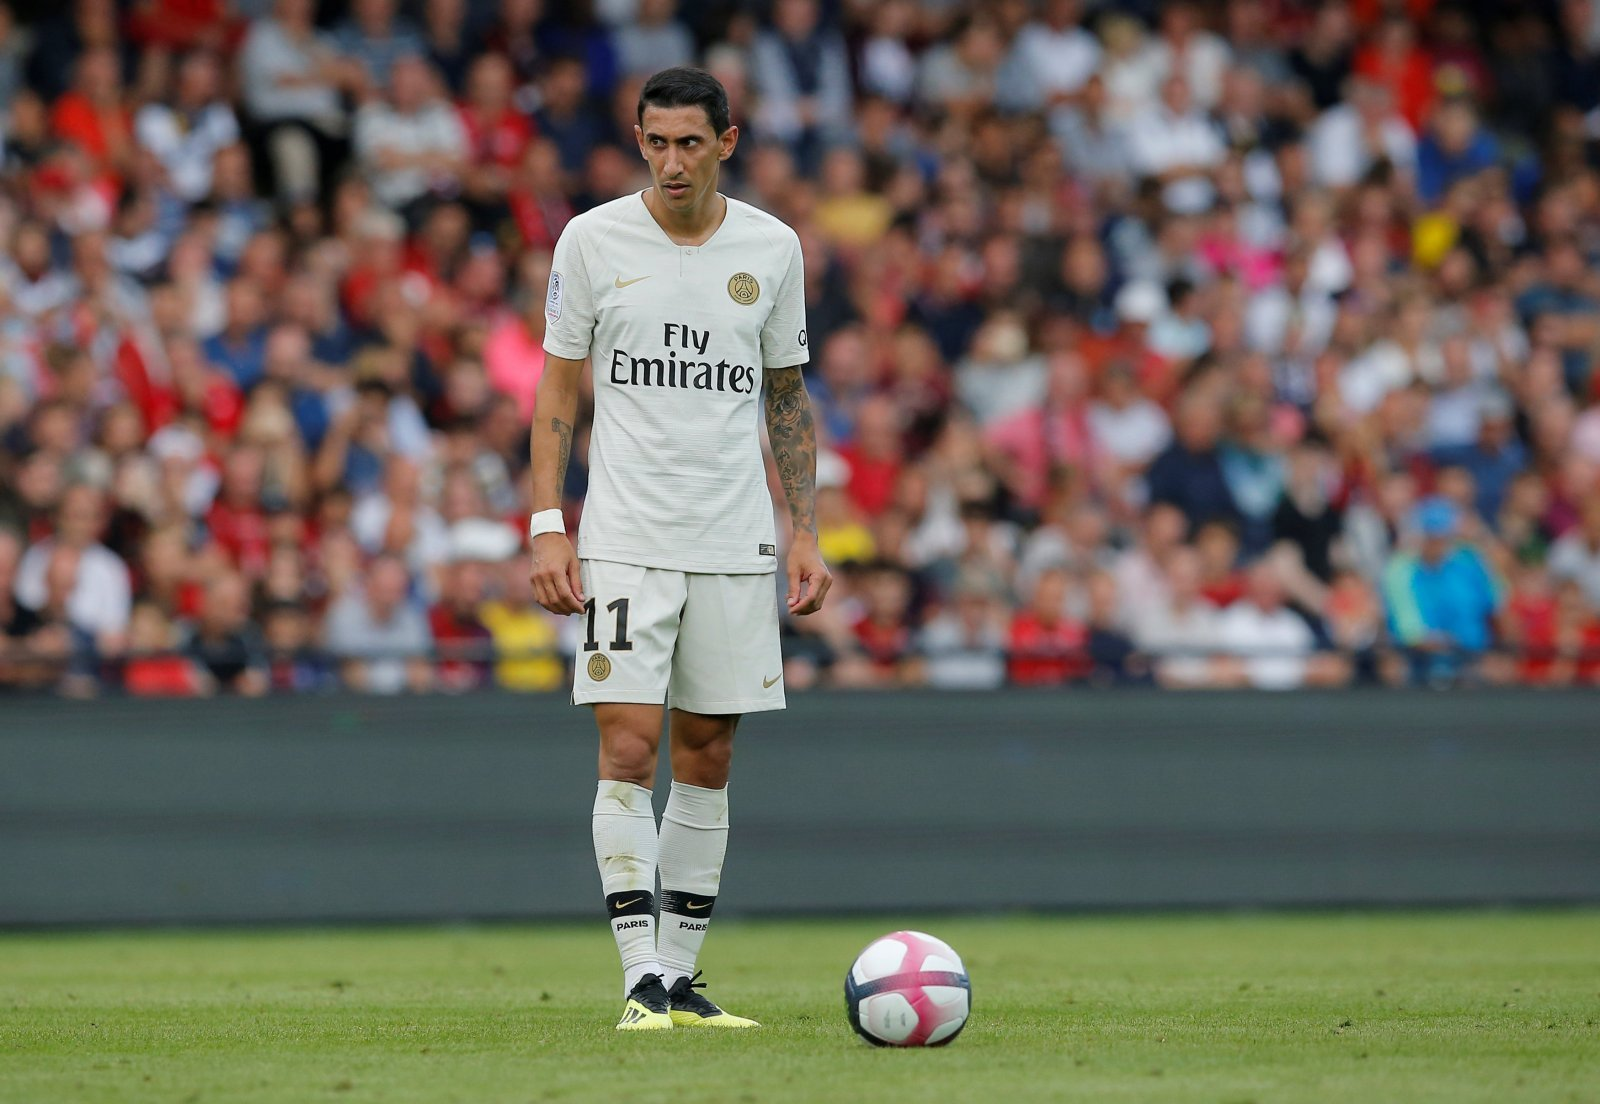 Angel Di Maria could slot nicely into an Arsenal midfield not quite sure of itself yet